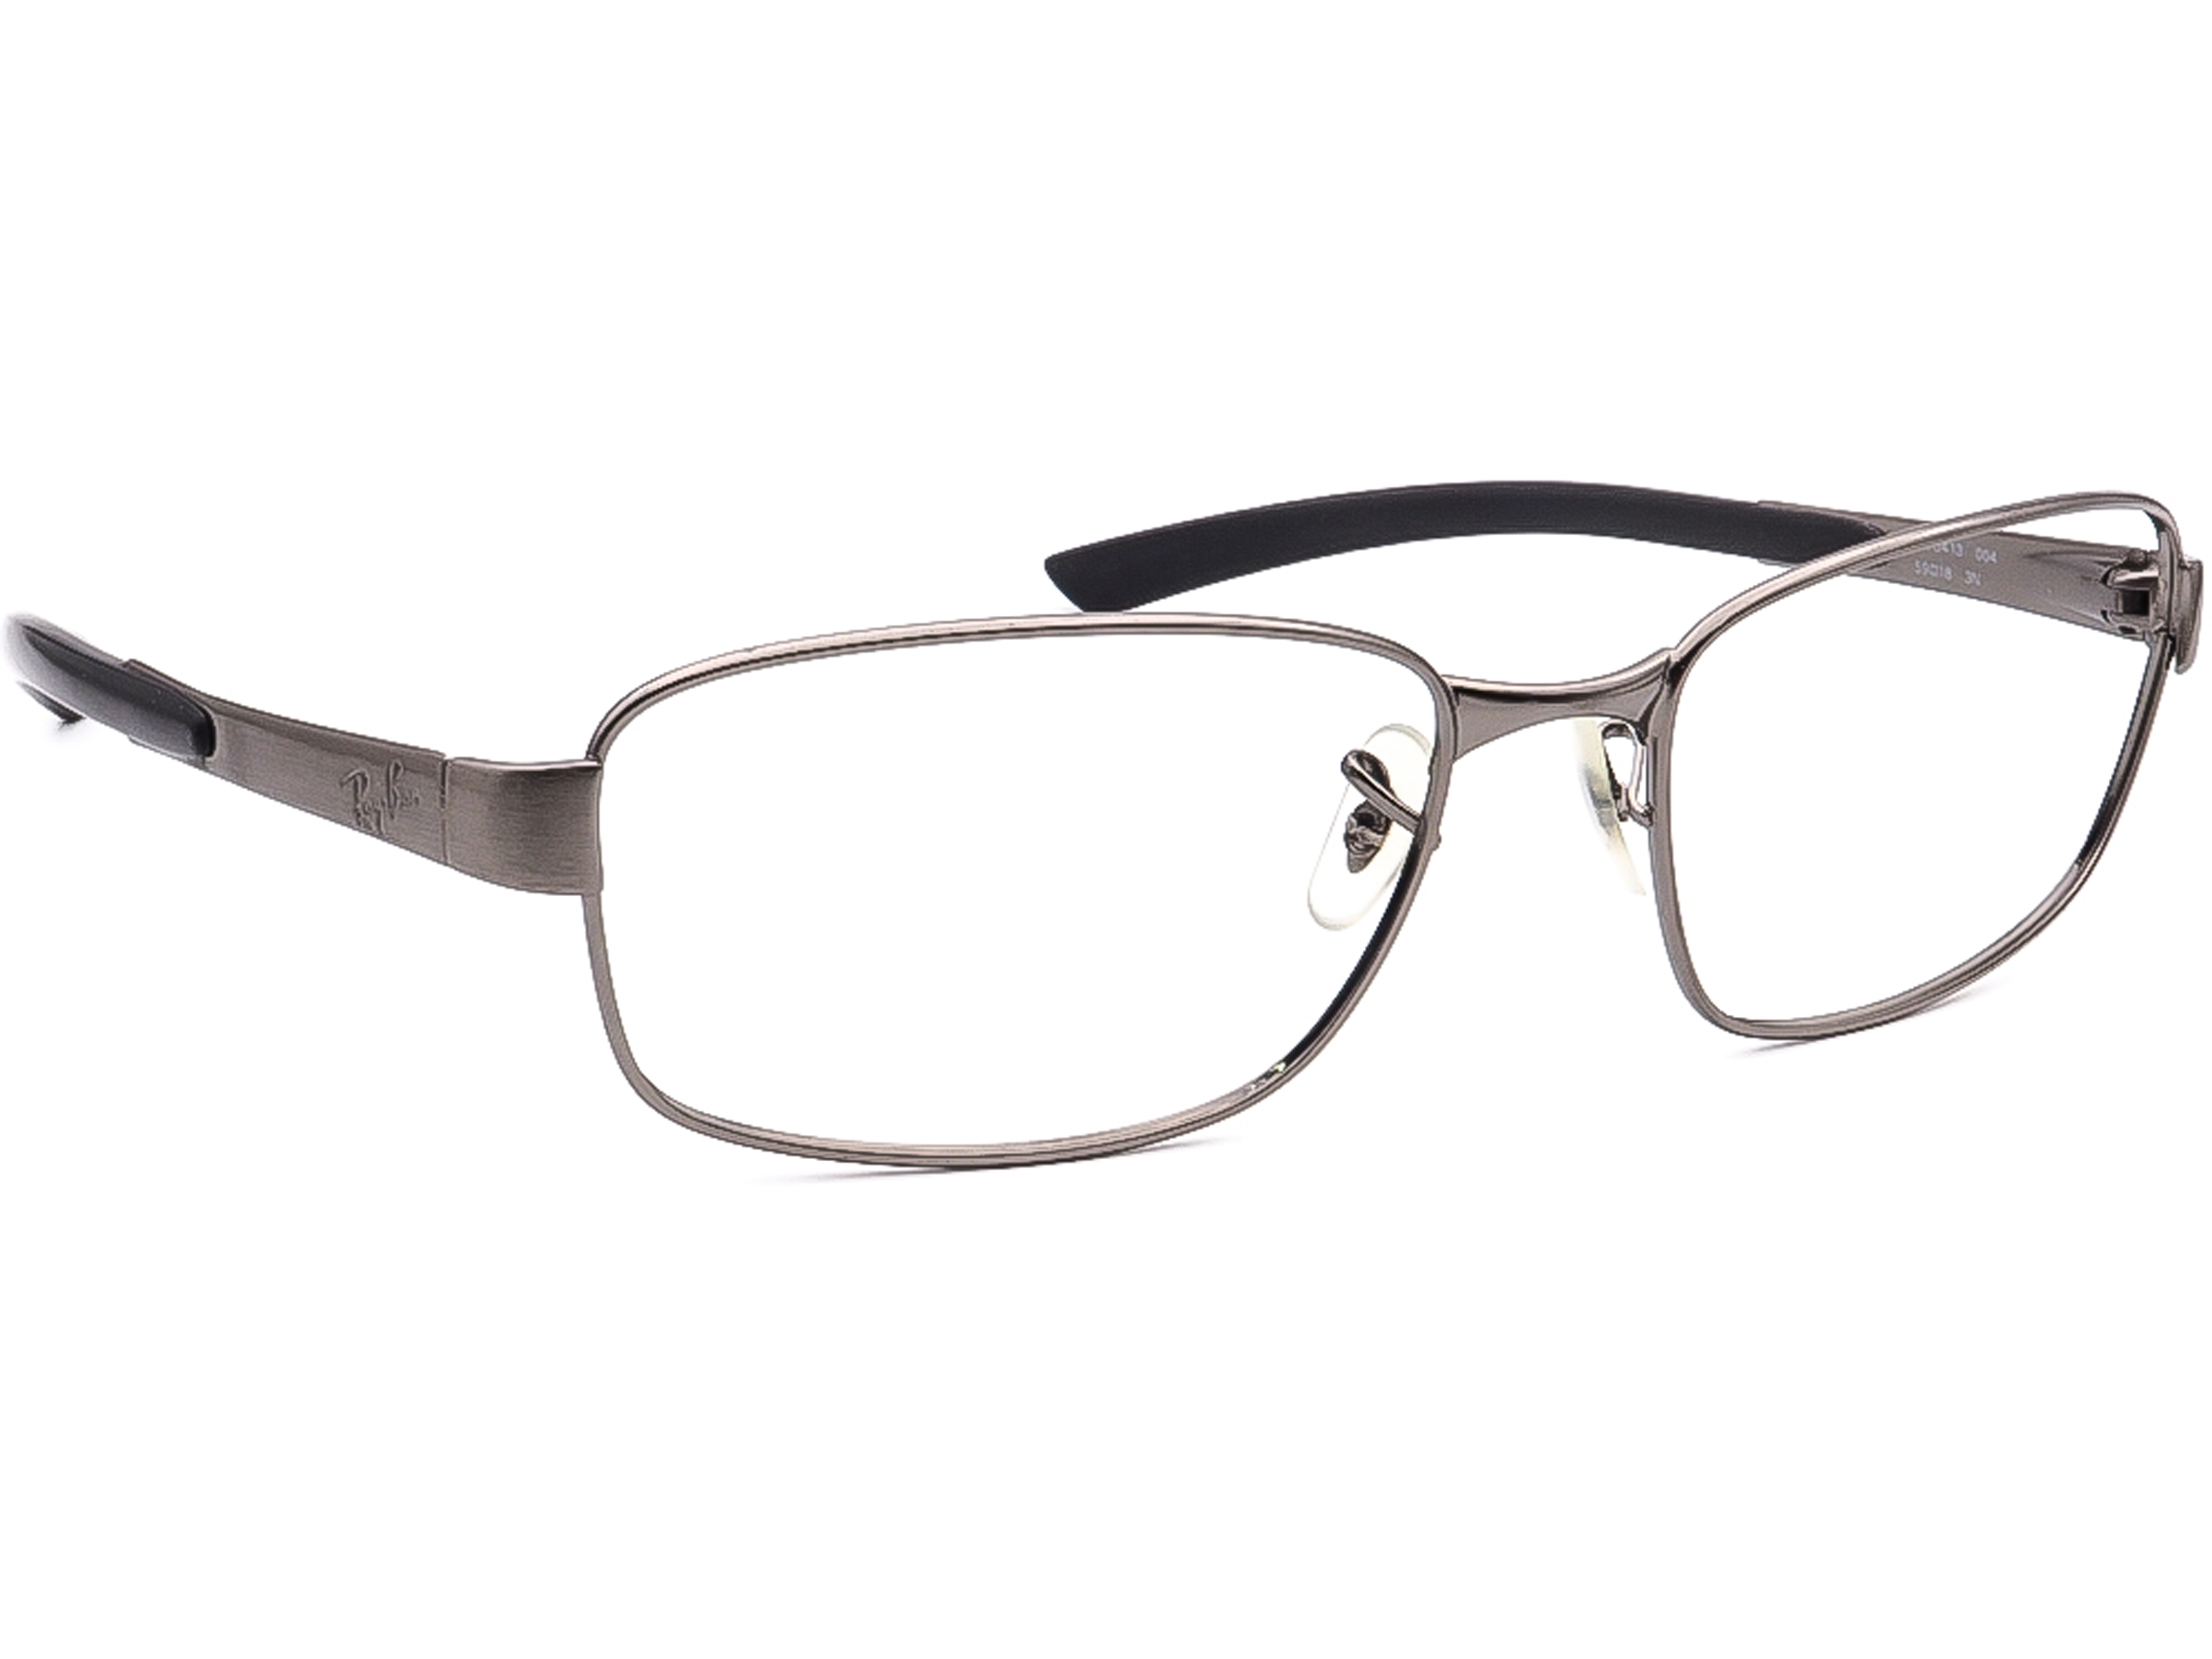 Ray Ban RB 3413 004 Sunglasses Frame Only